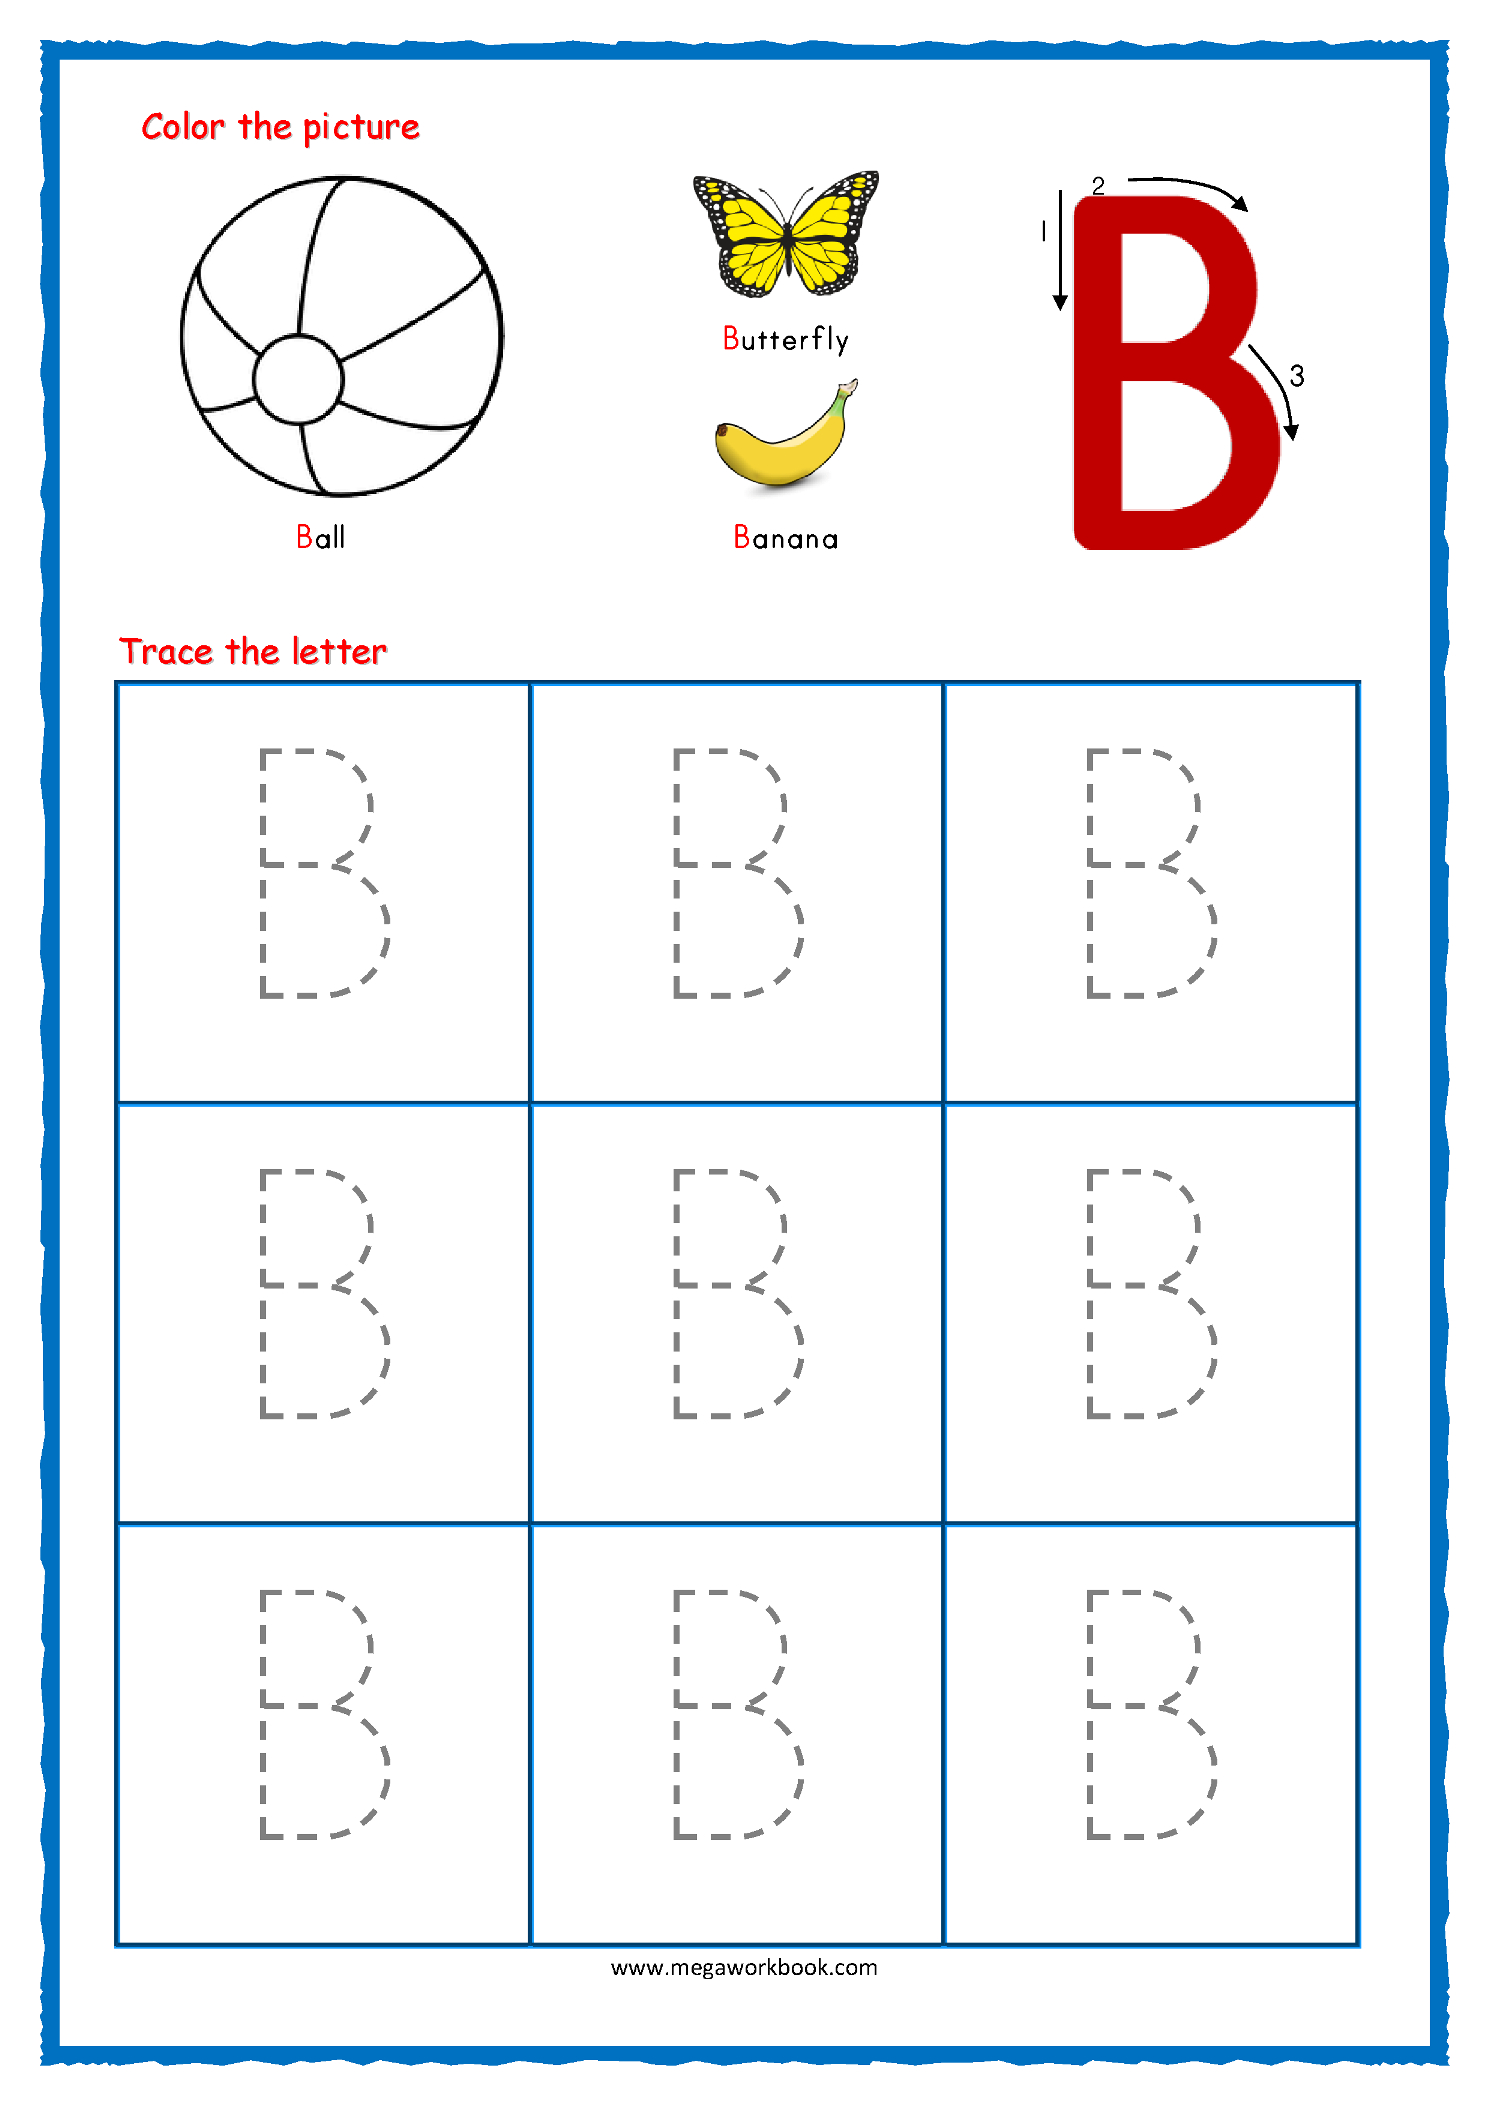 Tracing Letters - Alphabet Tracing - Capital Letters with A-Z Alphabet Tracing